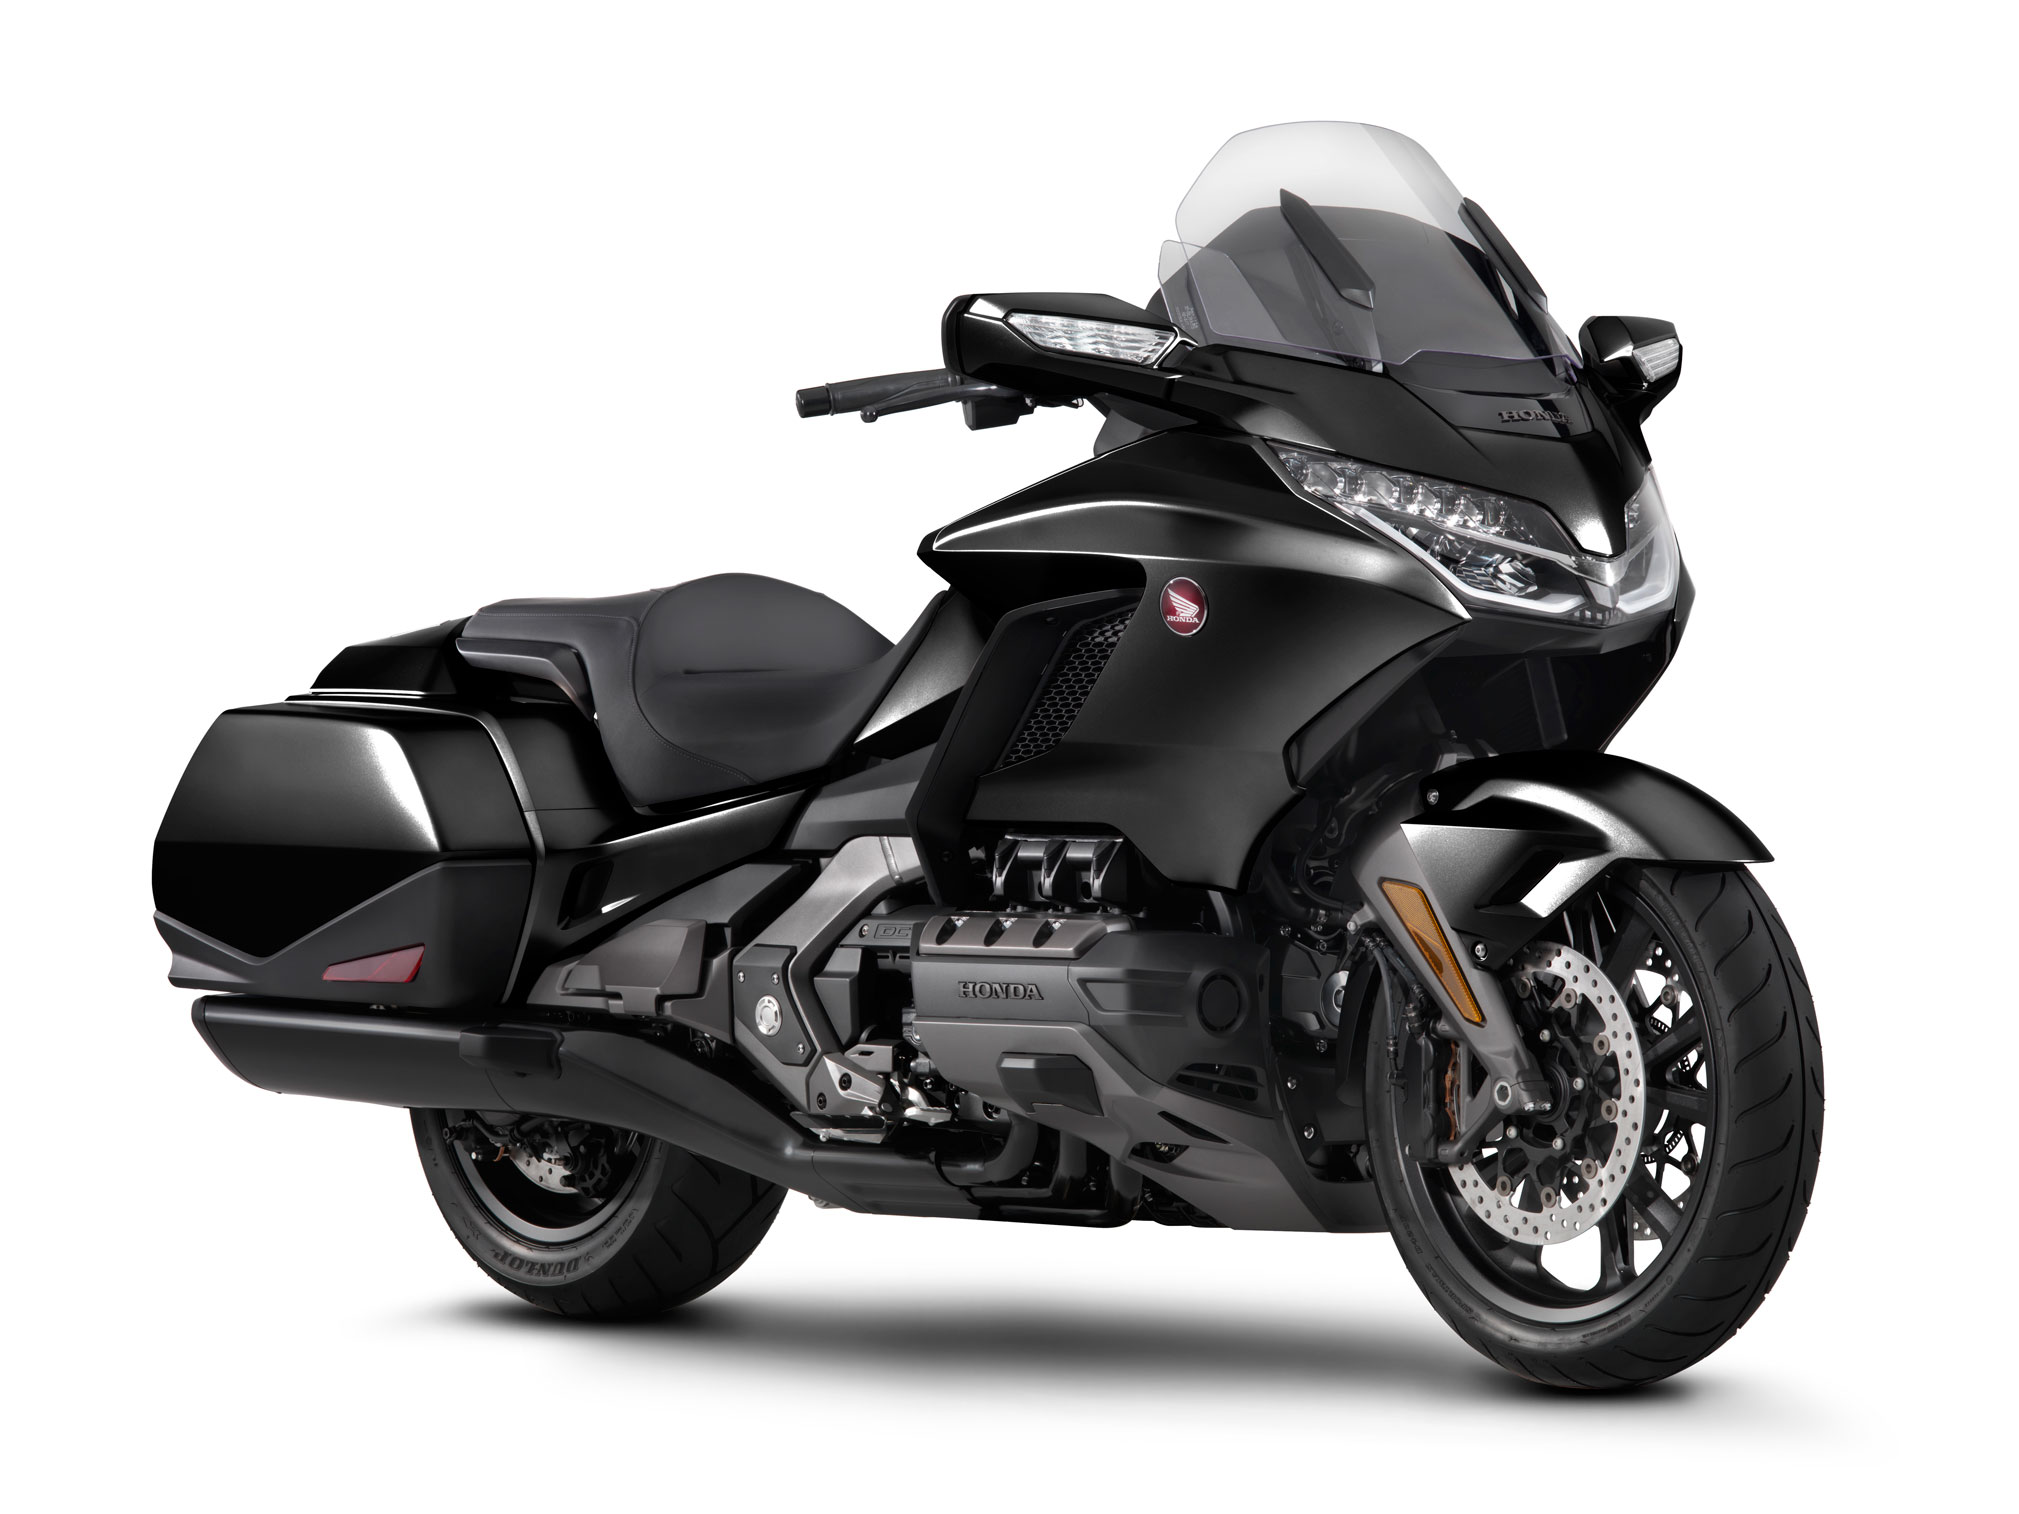 2019 honda goldwing price